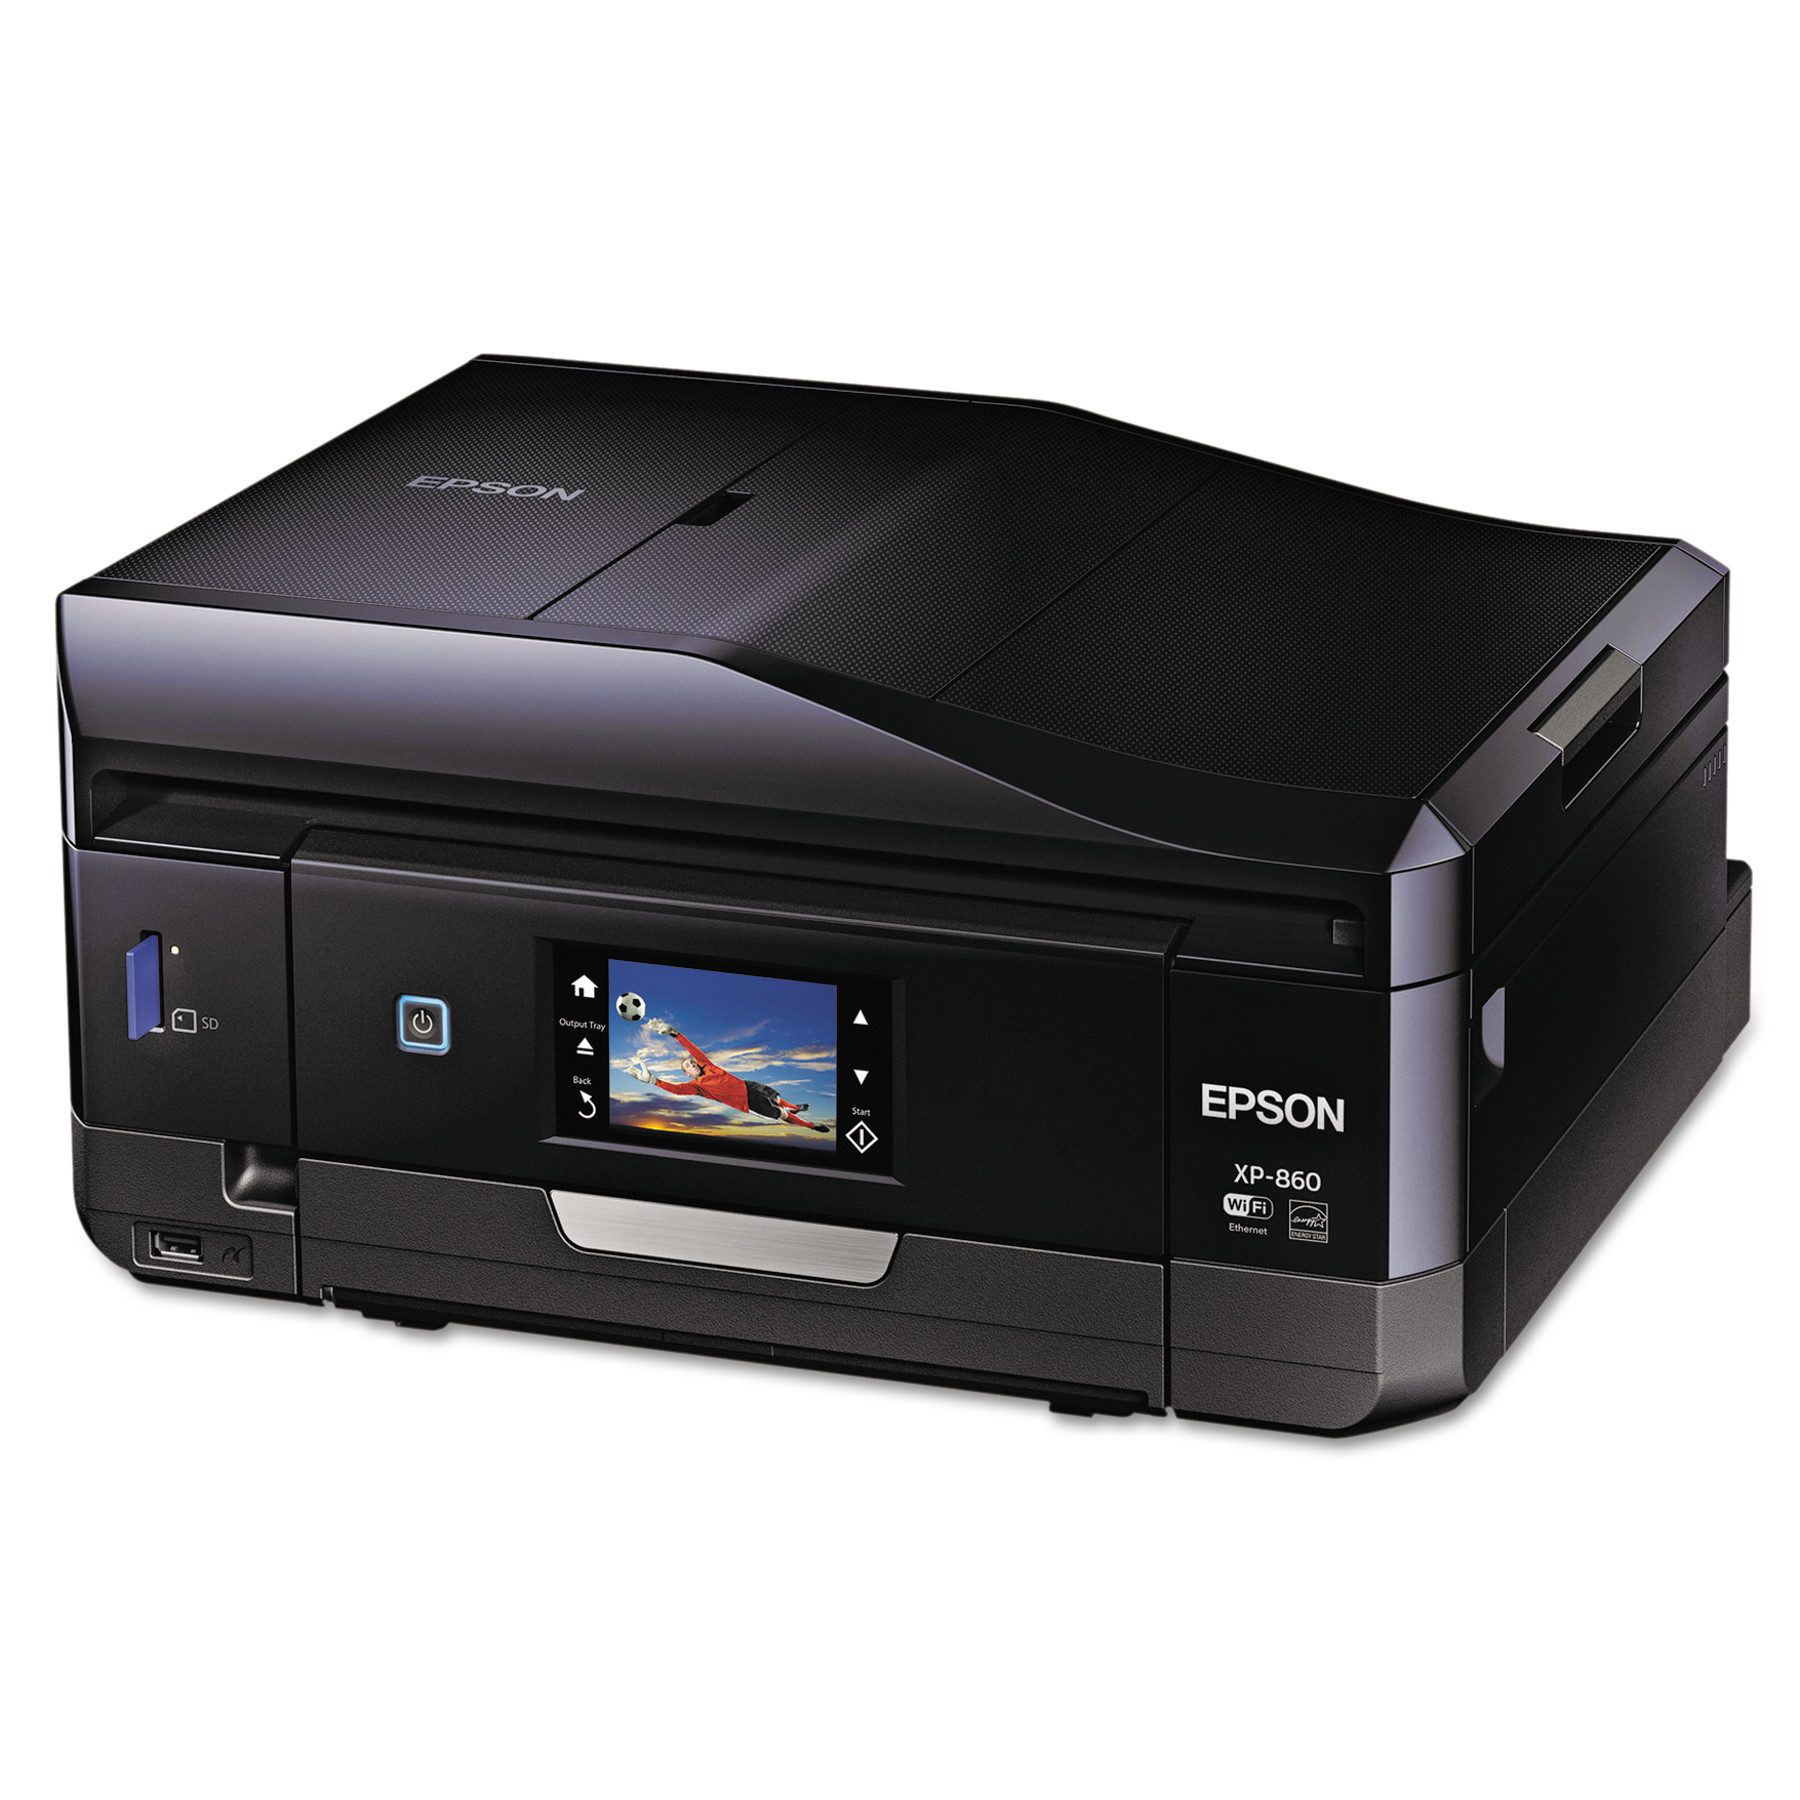 Epson Expression Premium XP-860 Wireless Small-in-One Inkjet Printer, Copy/Print/Scan